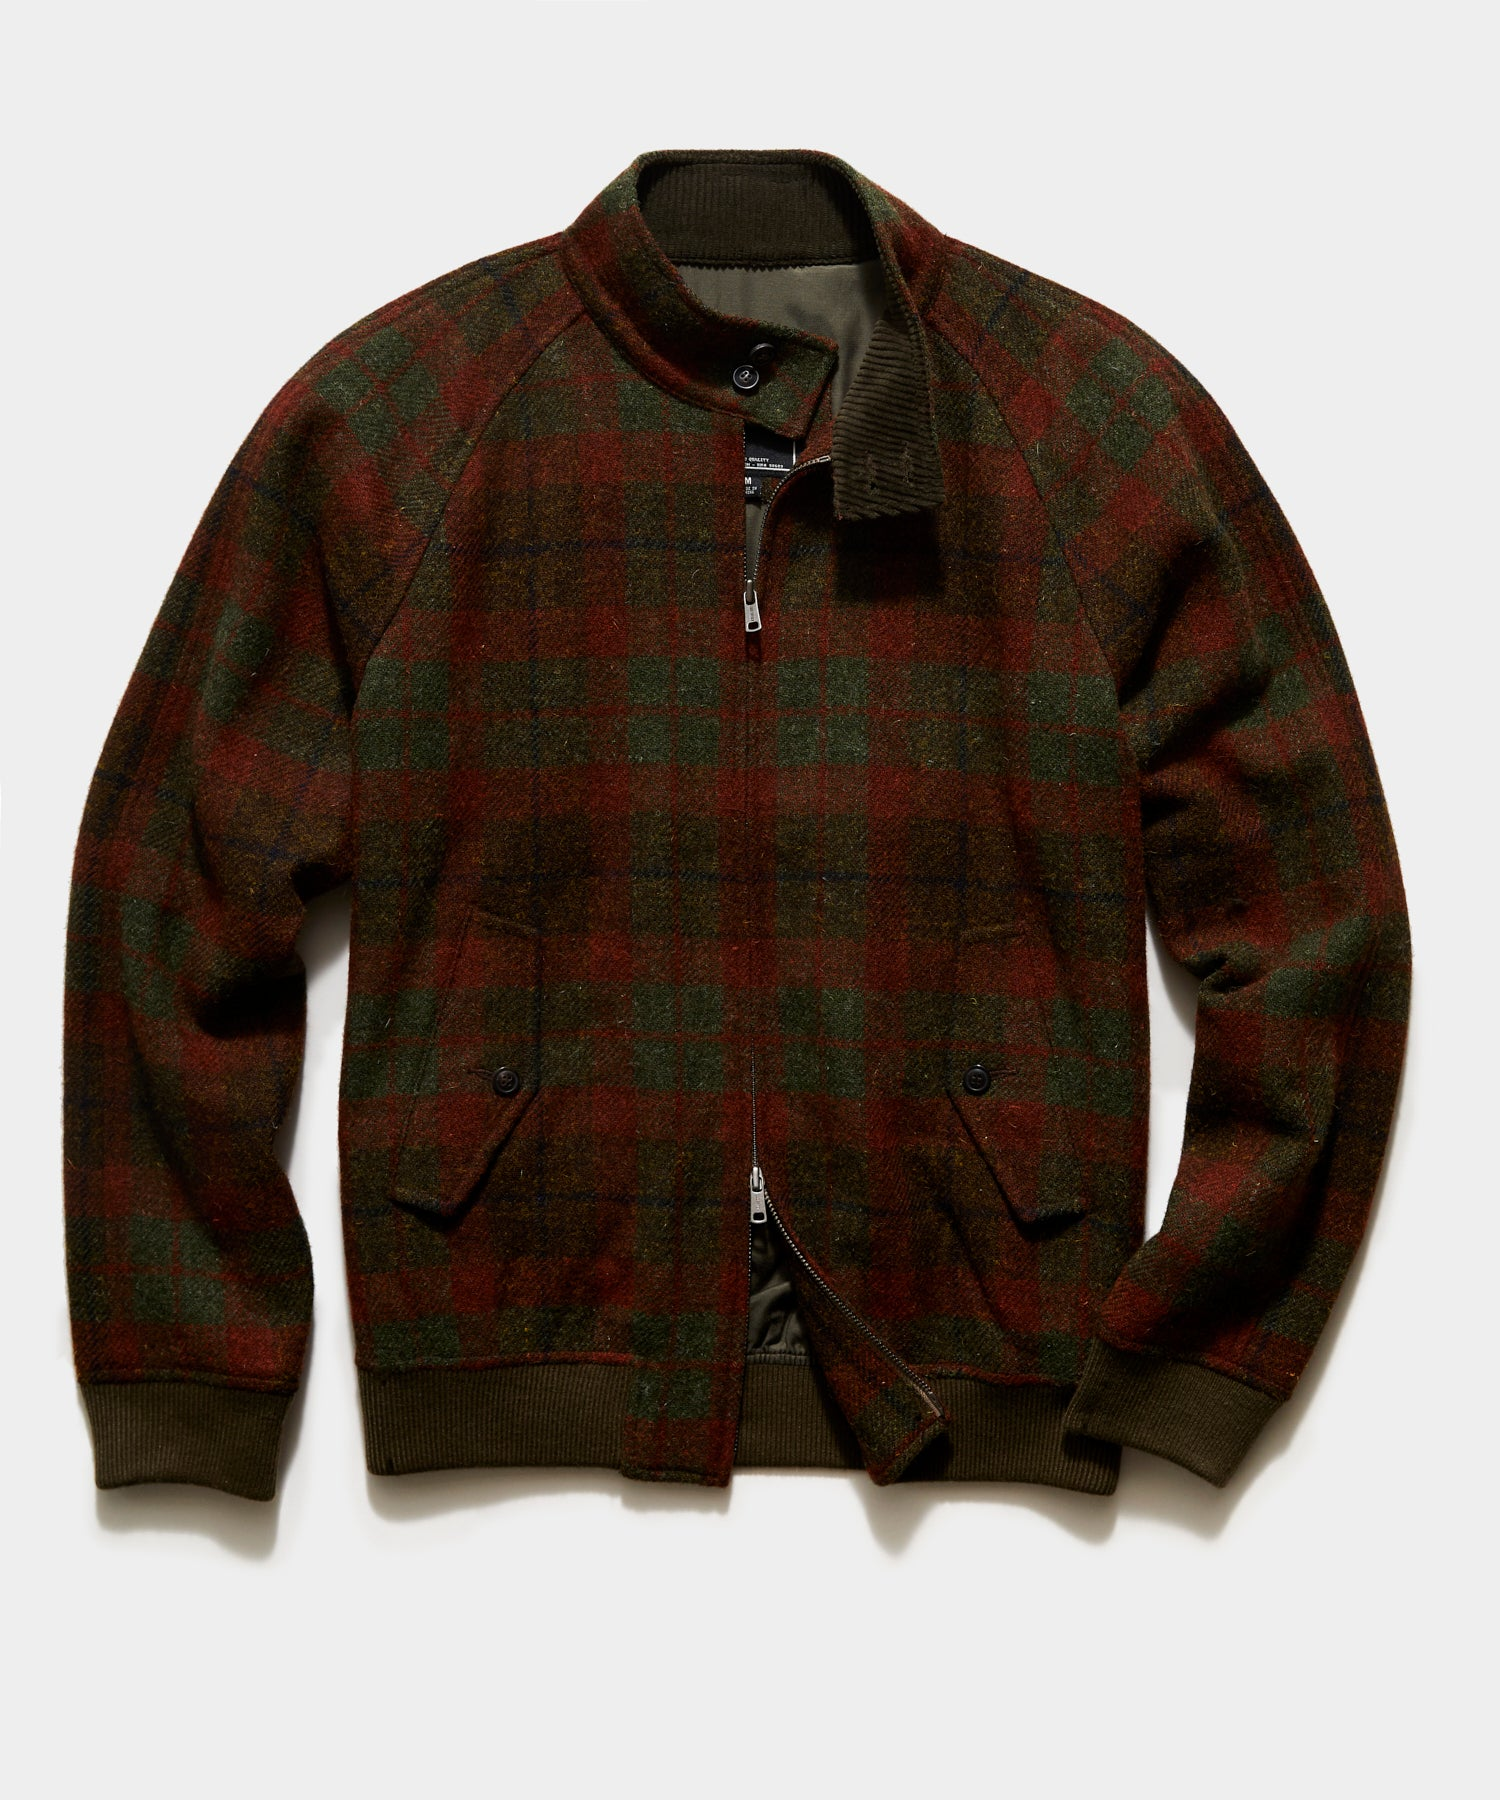 Harris Tweed Varsity Jacket in Olive